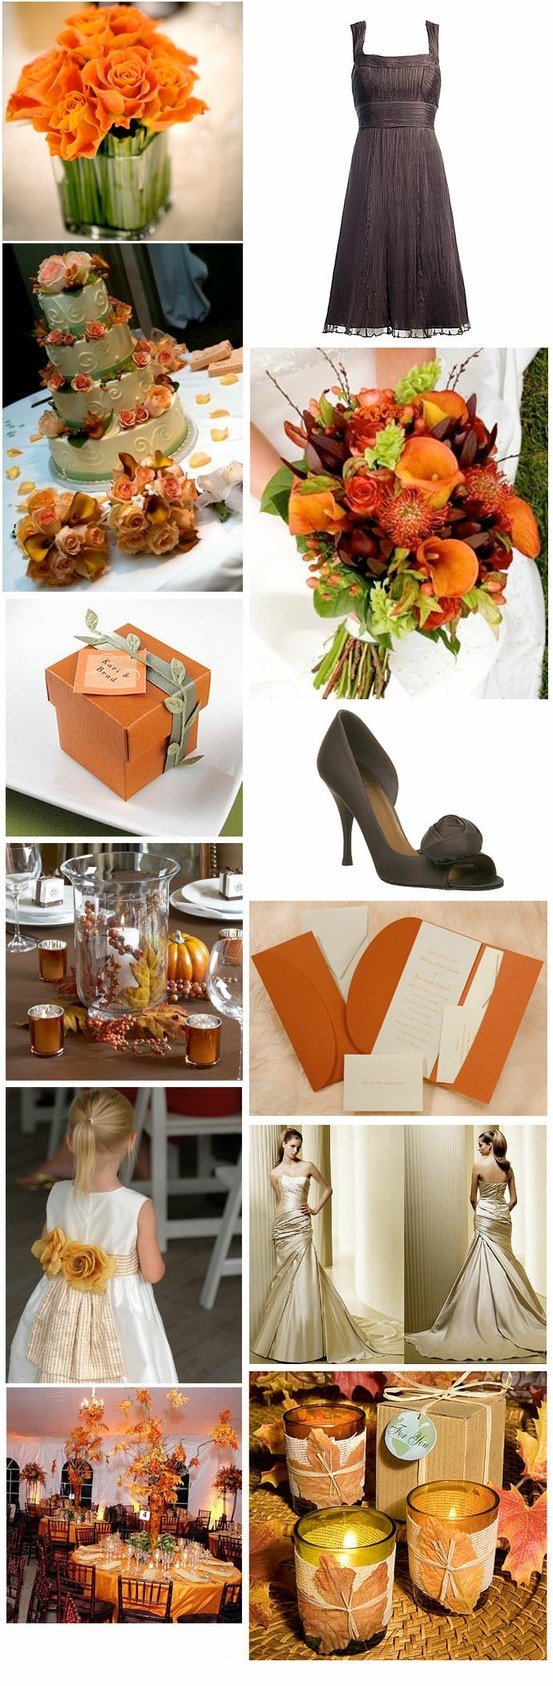 Fall Wedding, I love these colors! and a wedding in the fall might not be too bad...not too hot or cold and beautiful scenery outside...hmmmm